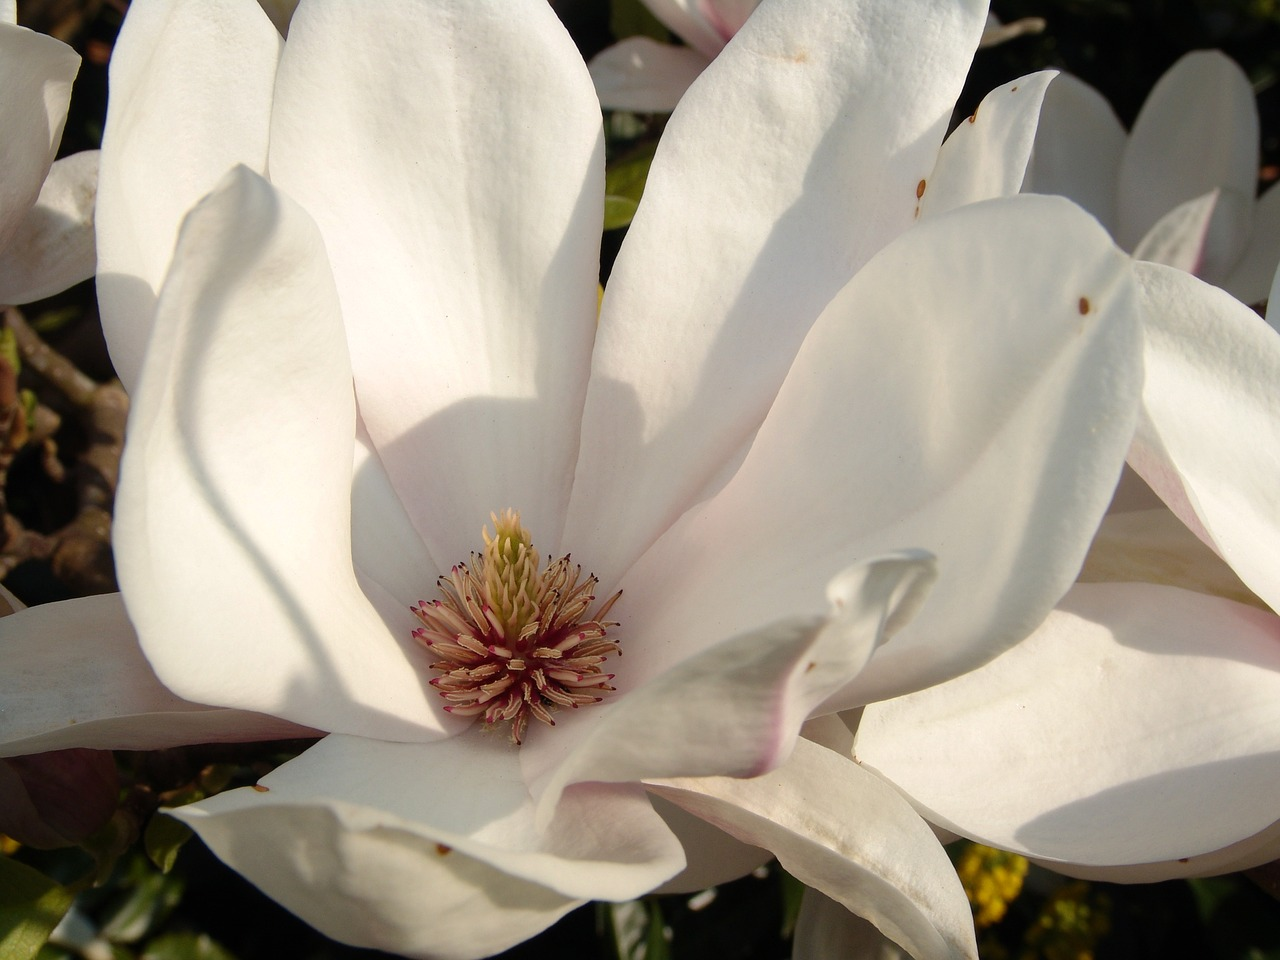 Magnoliaflowerspringflowersbloom Free Photo From Needpixcom